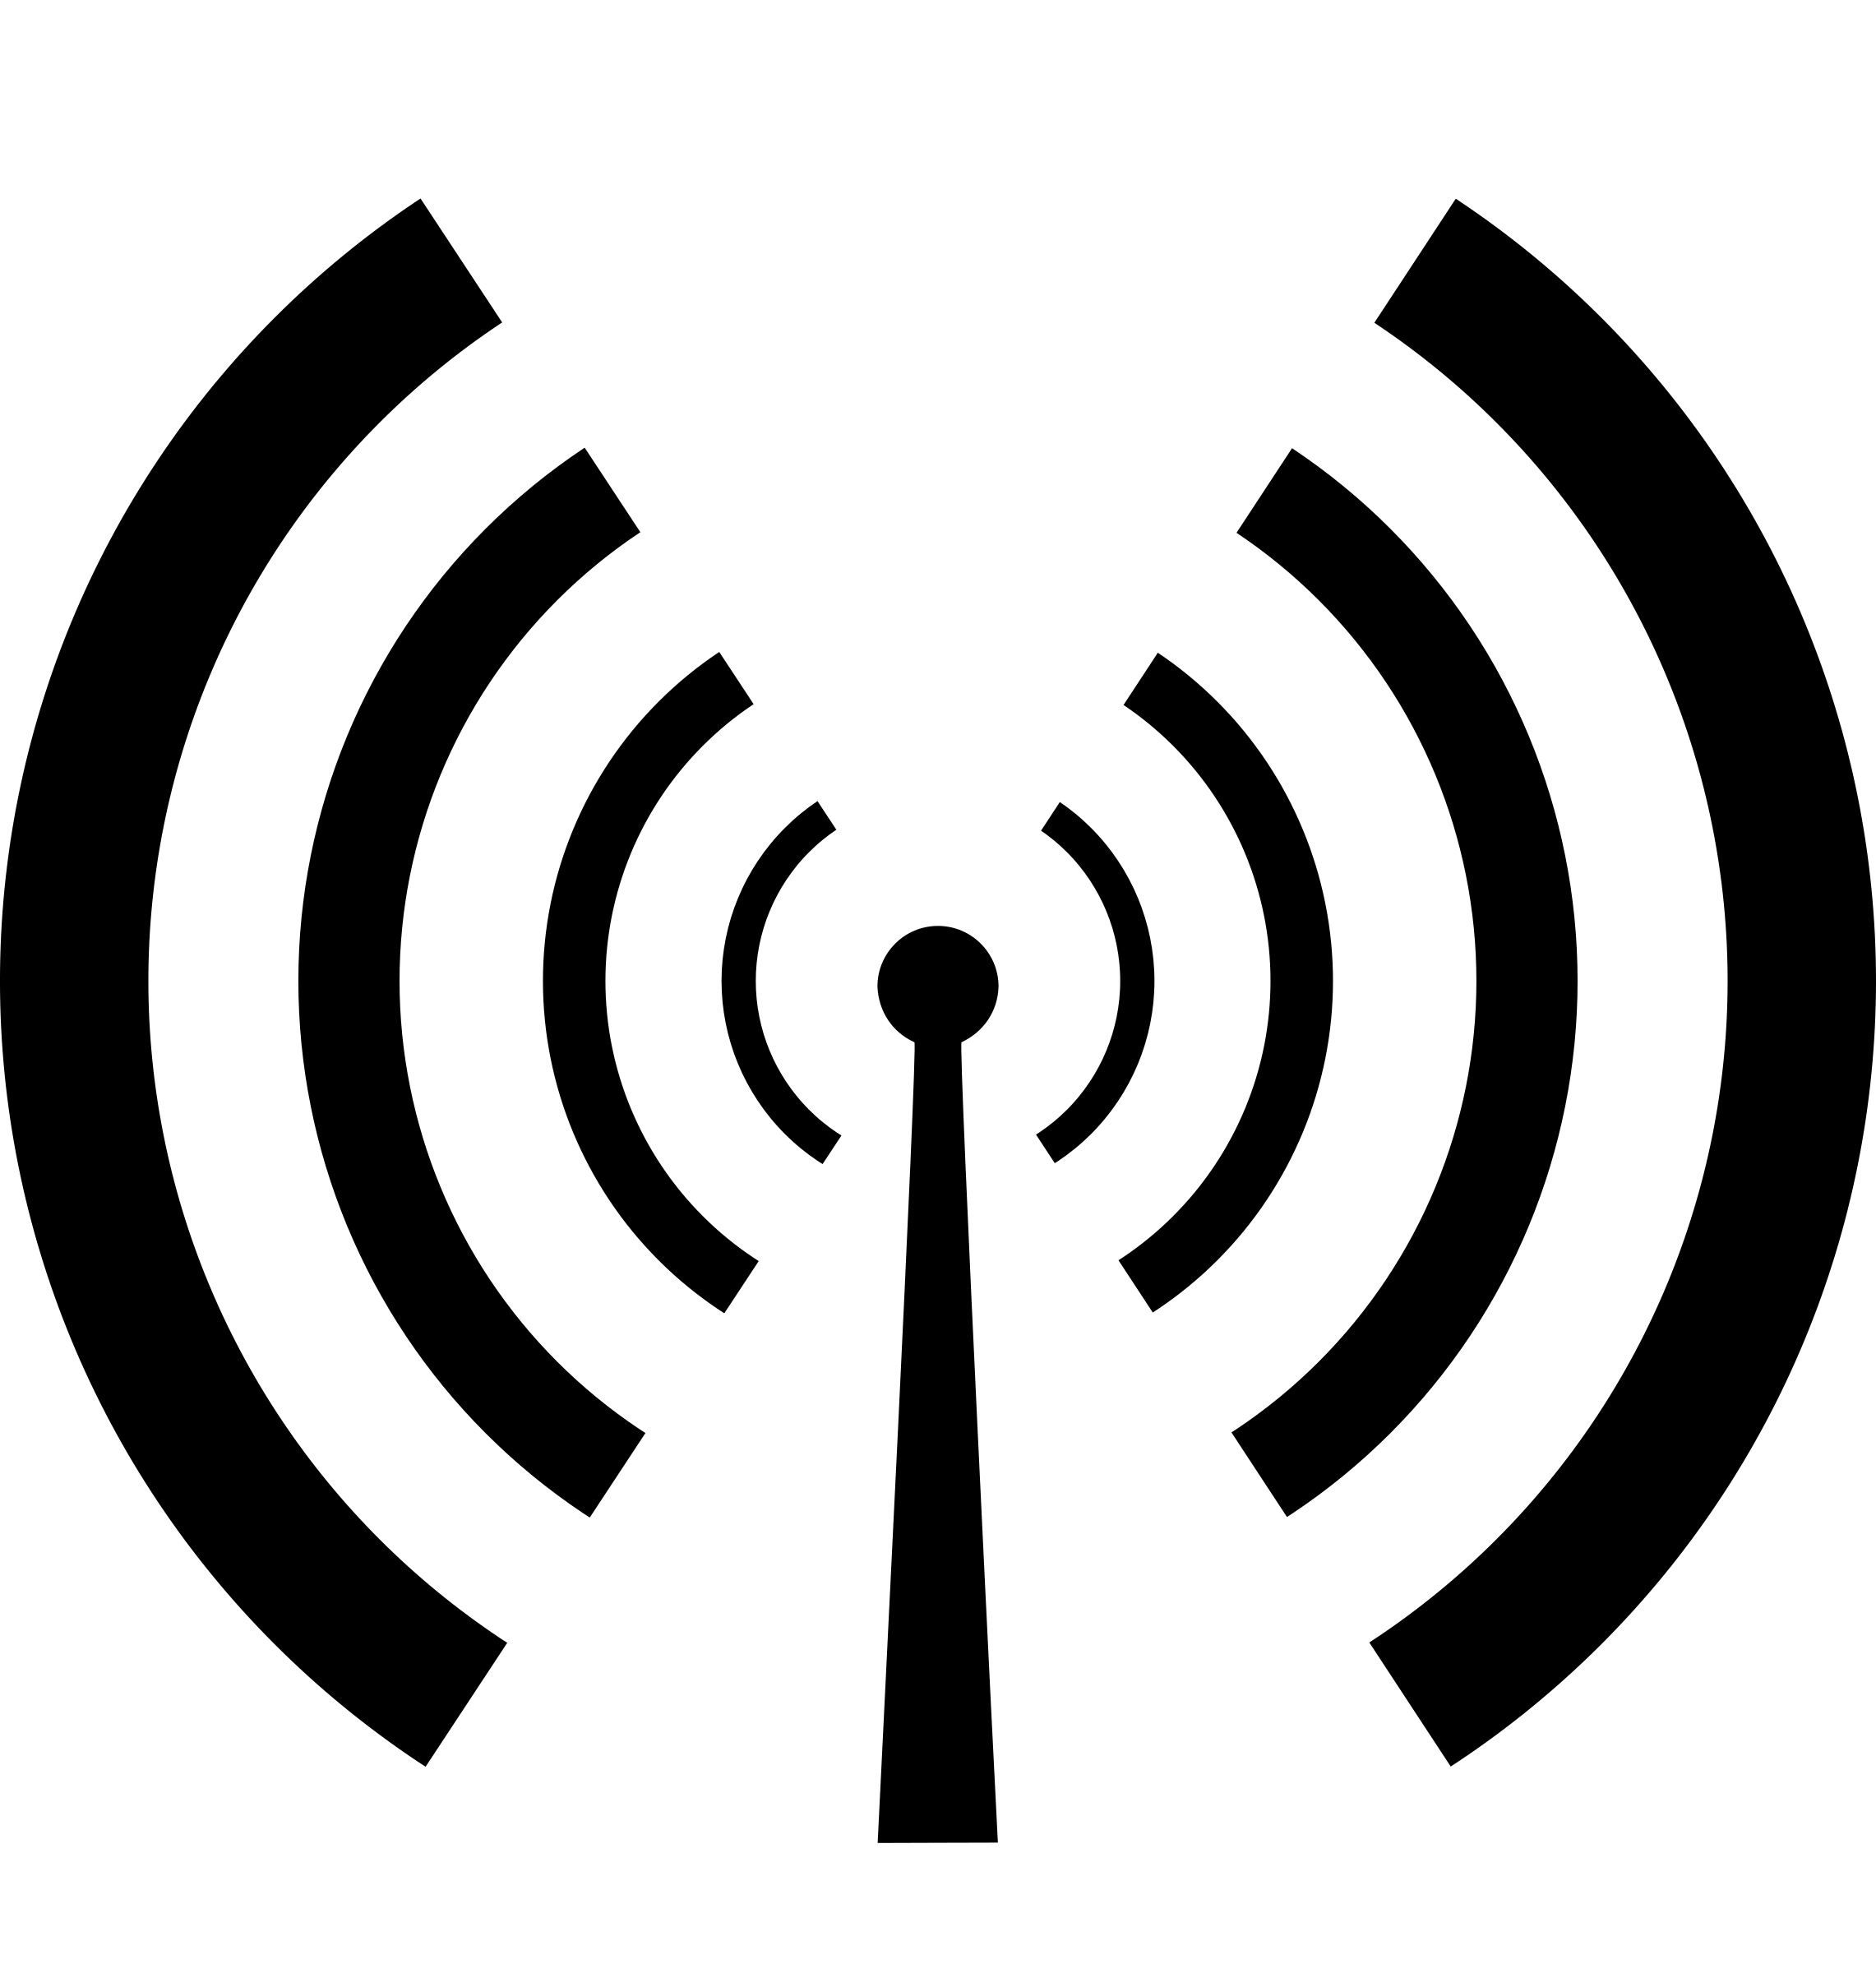 Radio frequency png. Antenna image